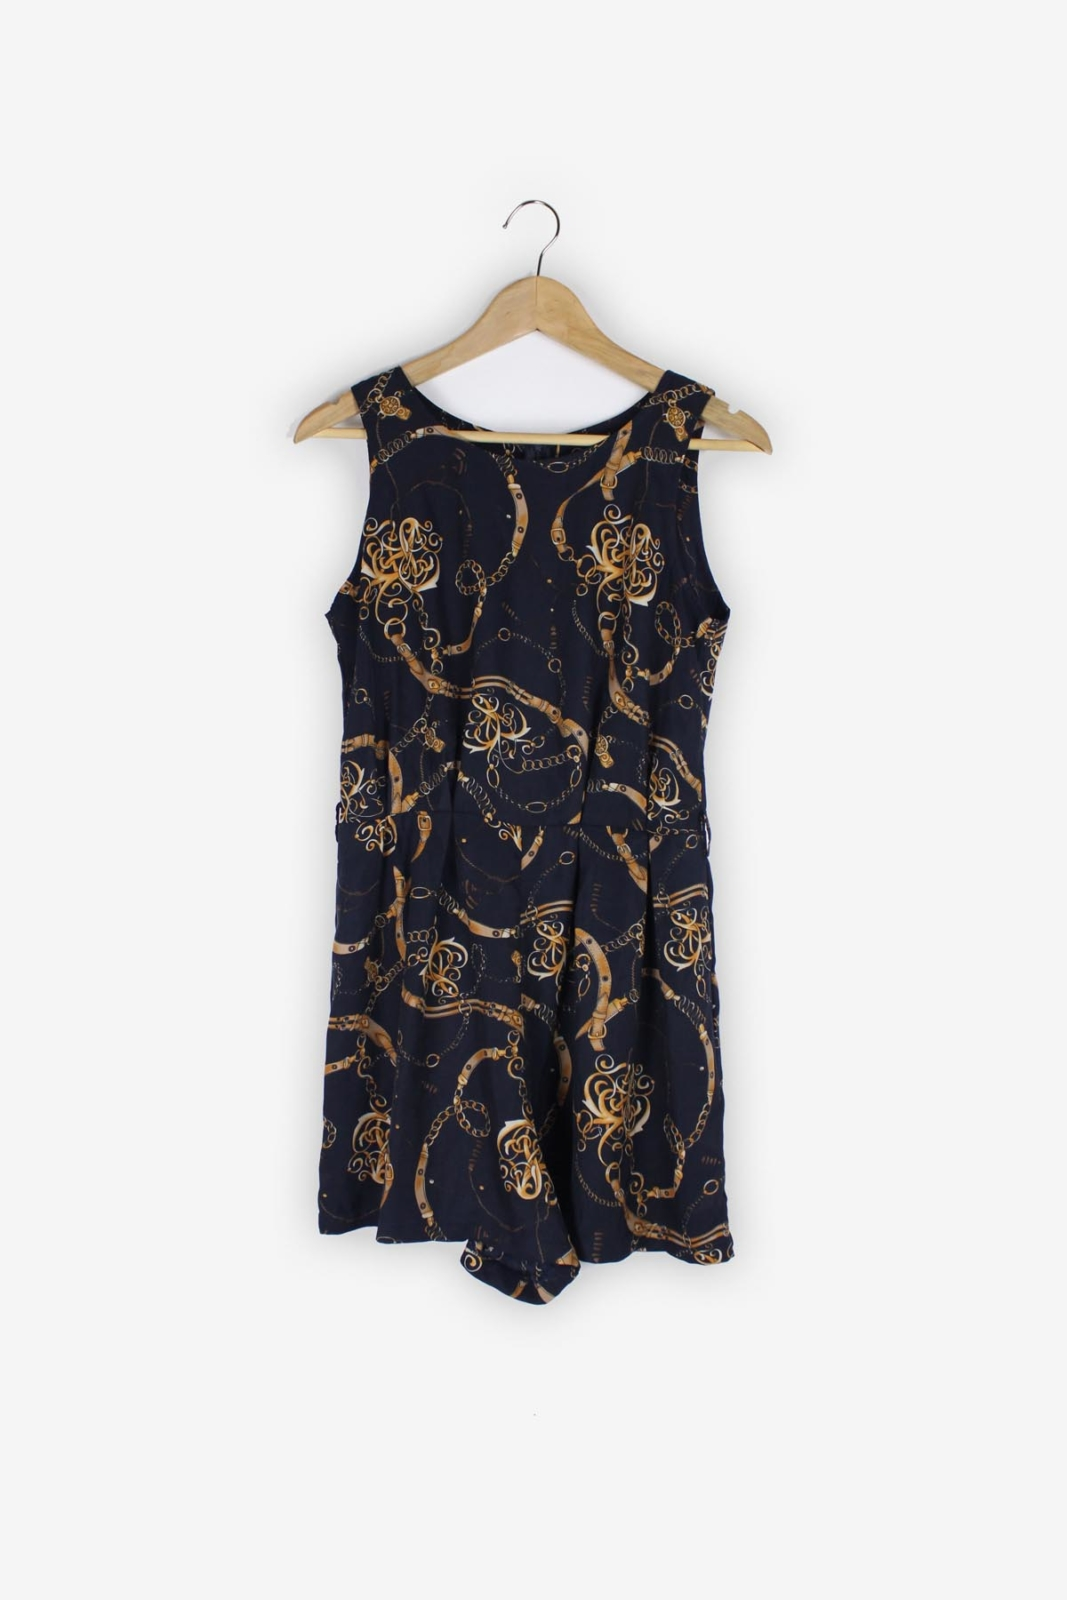 Second-hand Clothing - Sale, Women, Jumpsuits & Playsuits, Second-Hand Clothing